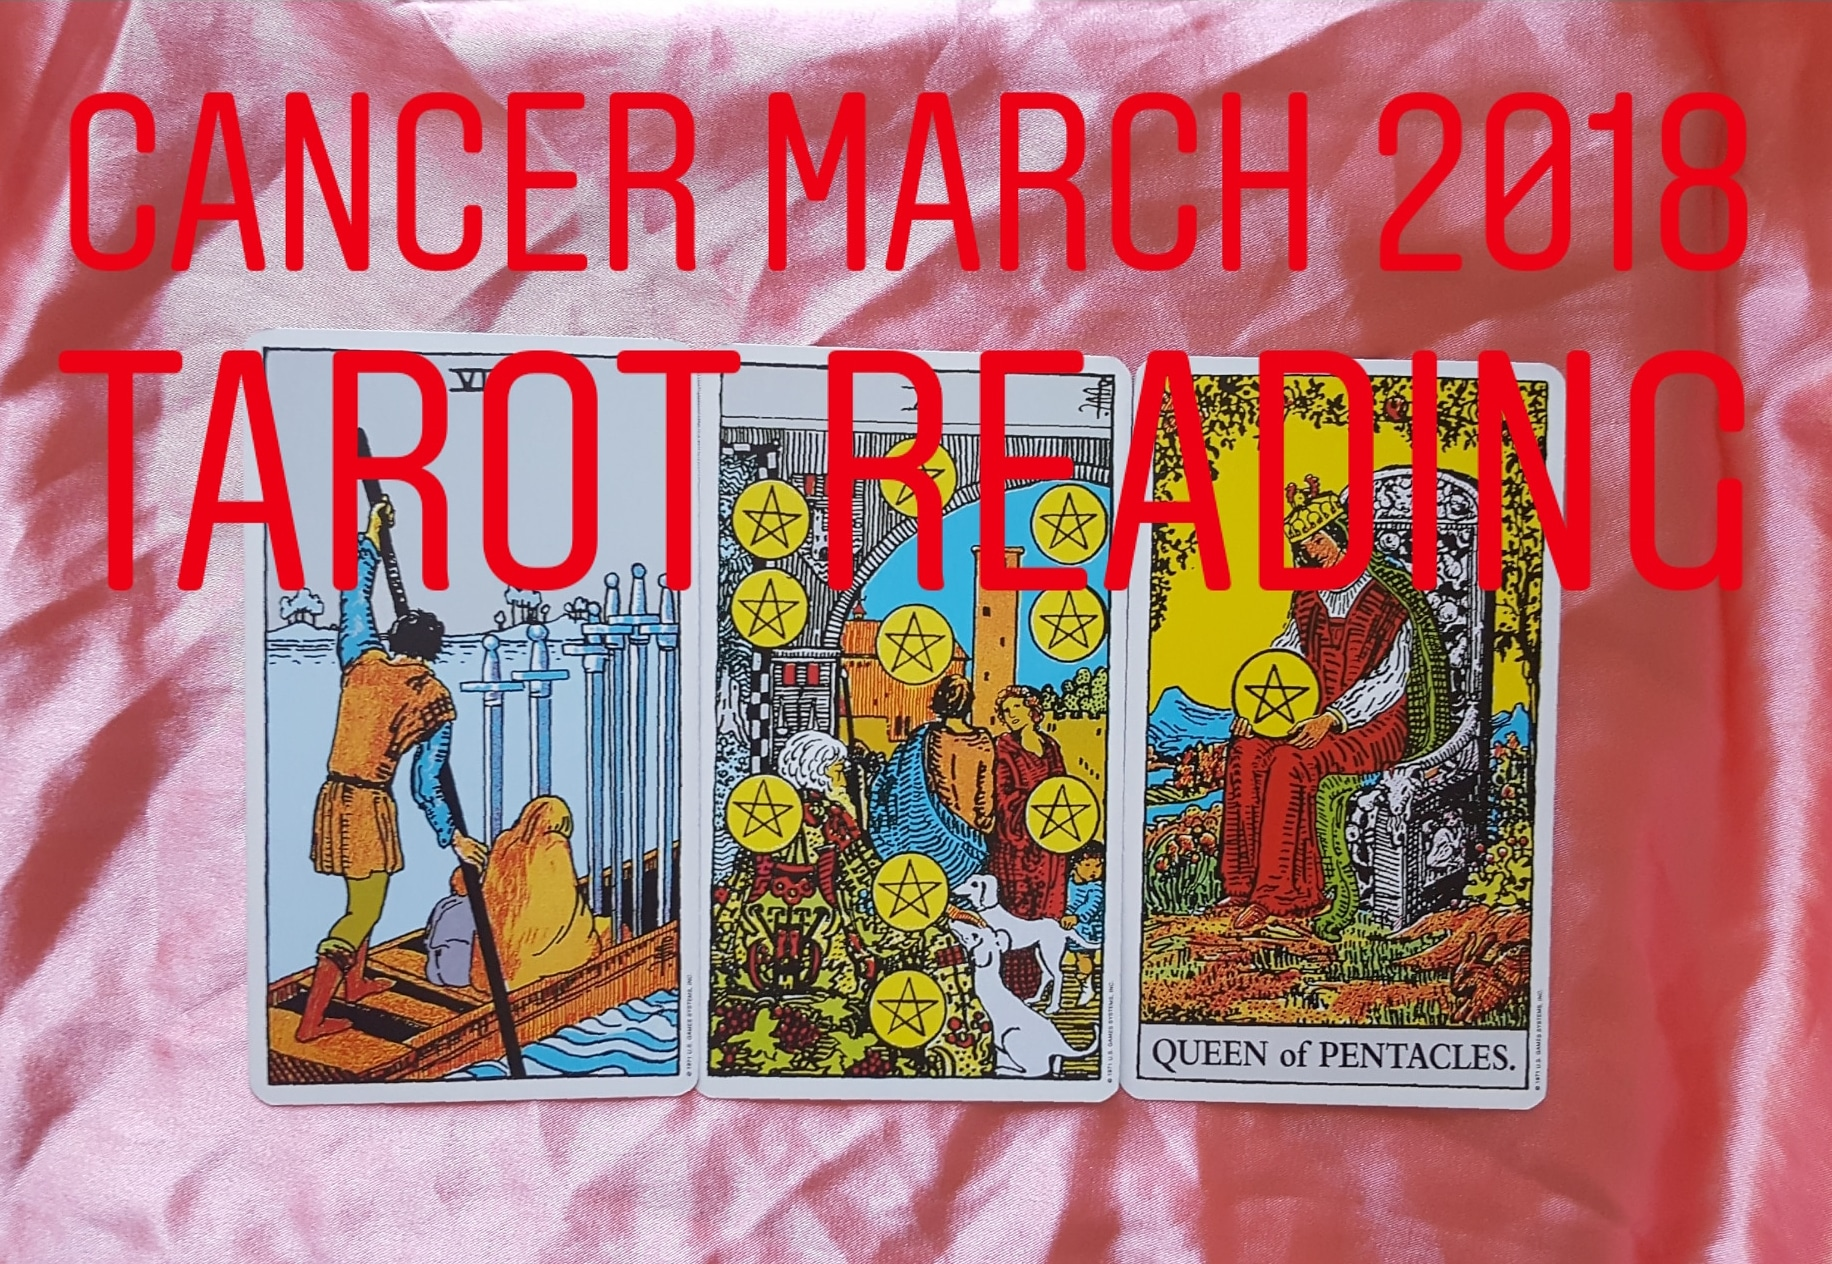 Cancer March 2018  6 of Swords/ 10 of Pentacles/ Queen of Pentacles